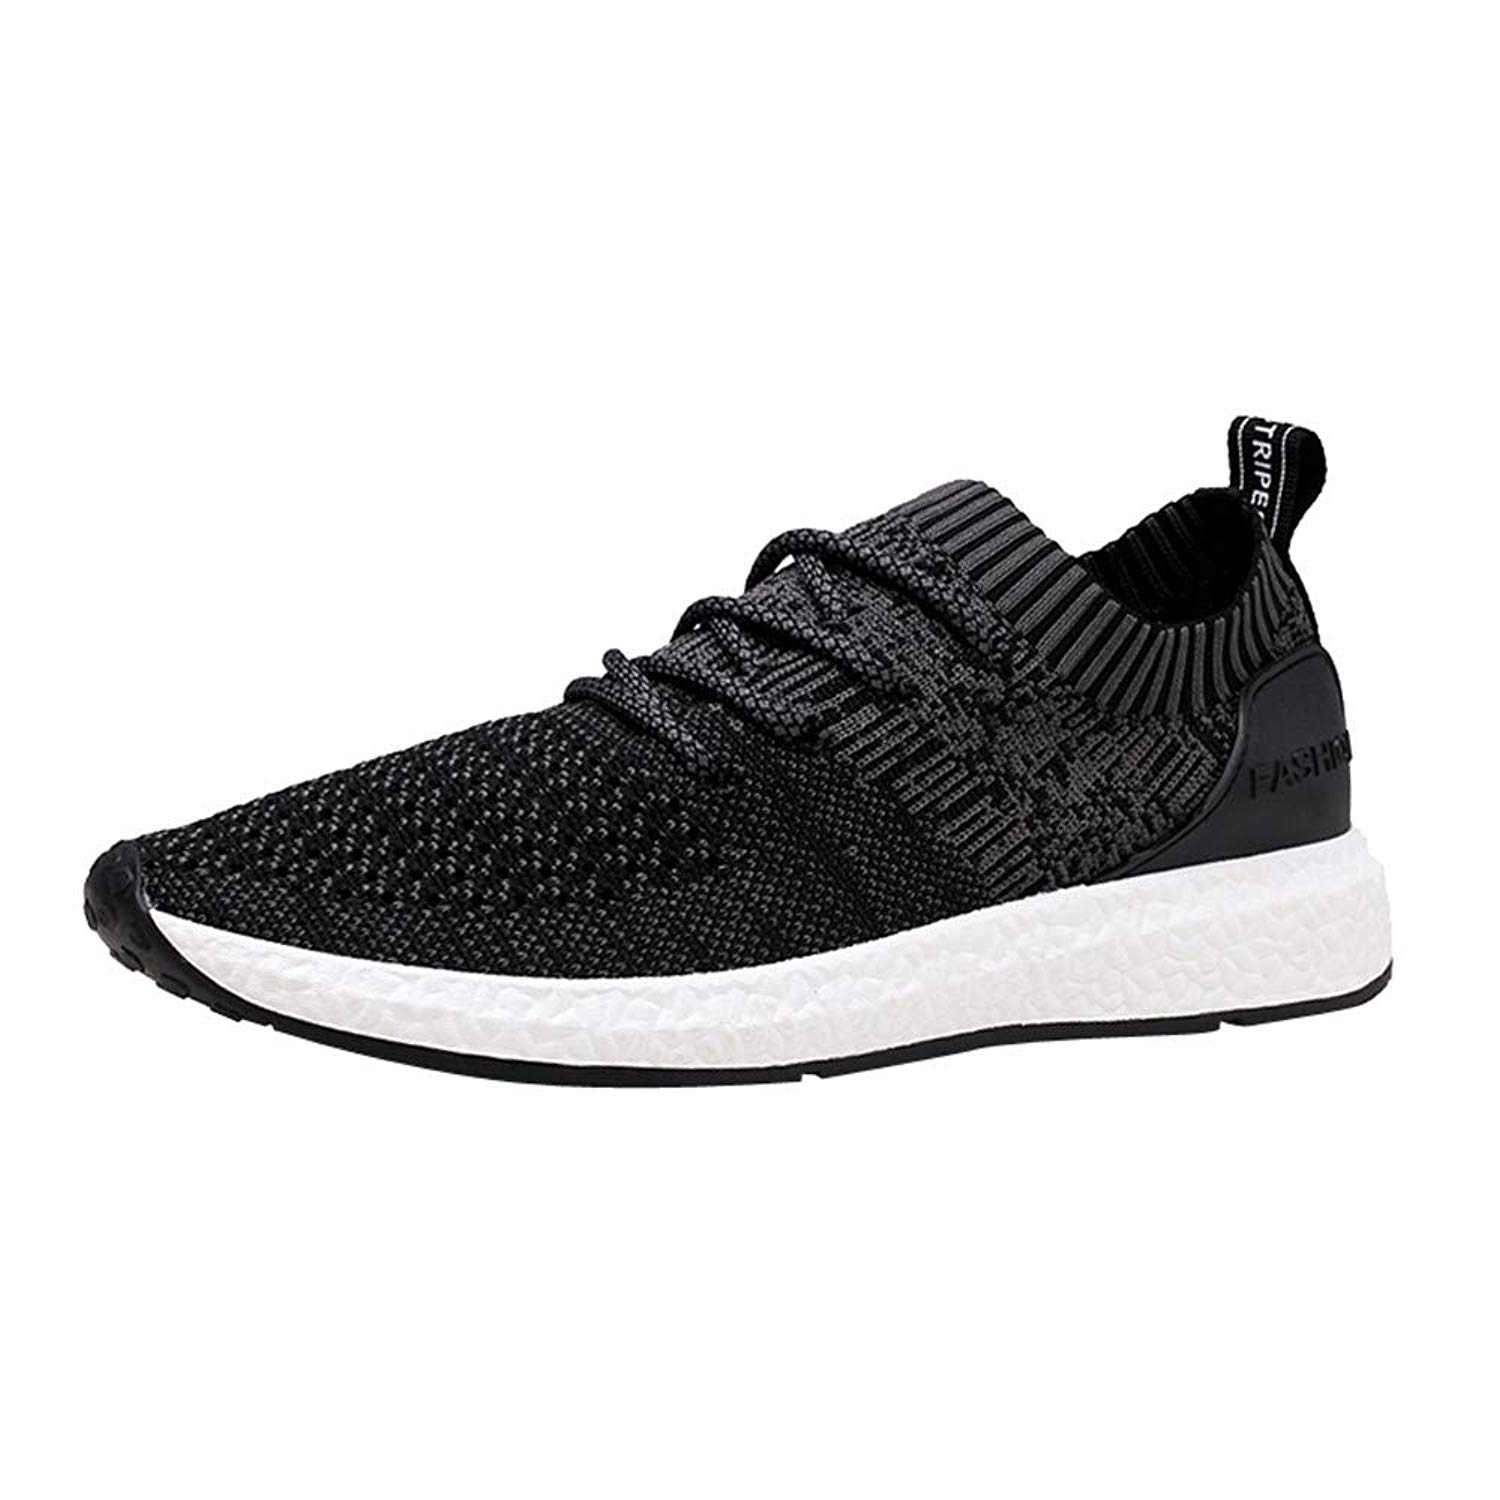 Sneakers for Men,Clearance Sale!Caopixx Men's Breathable Running Shoes Casual Walking Training Sports Athletic Shoes